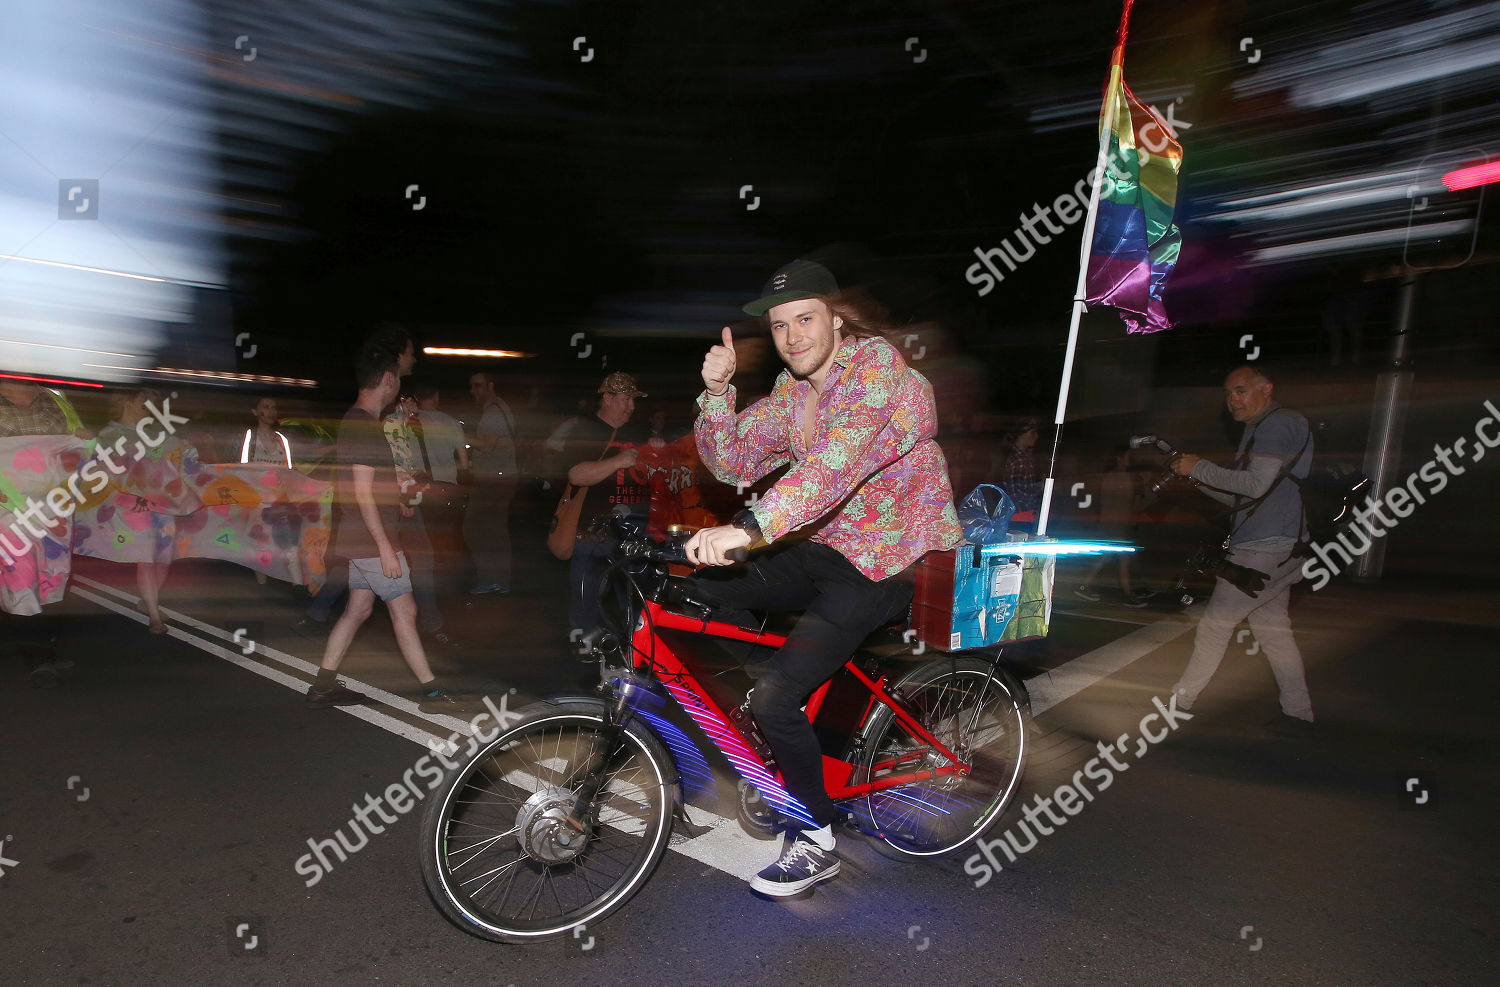 cyclist rainbow flag on his bike rides Editorial Stock Photo